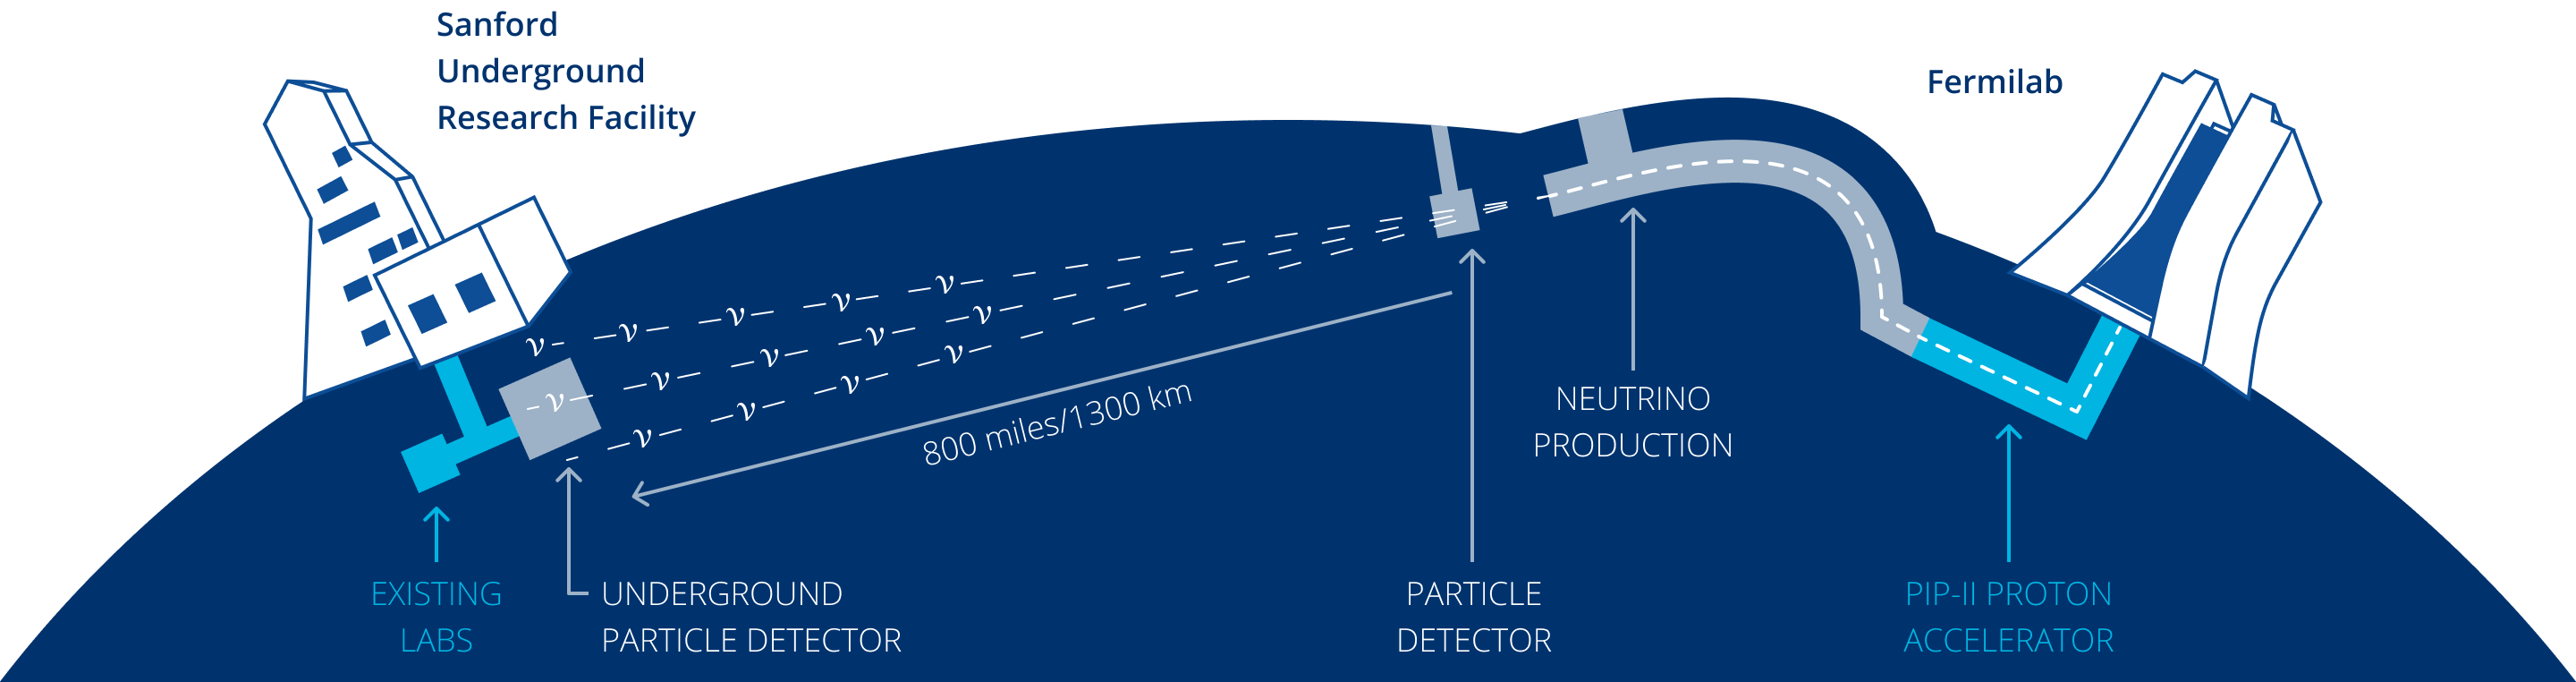 Illustration of the experiment (DUNE), the facility (LBNF) and the Fermilab accelerator complex, which provides the beam (PIP-II). The neutrino beam will widen over distance.